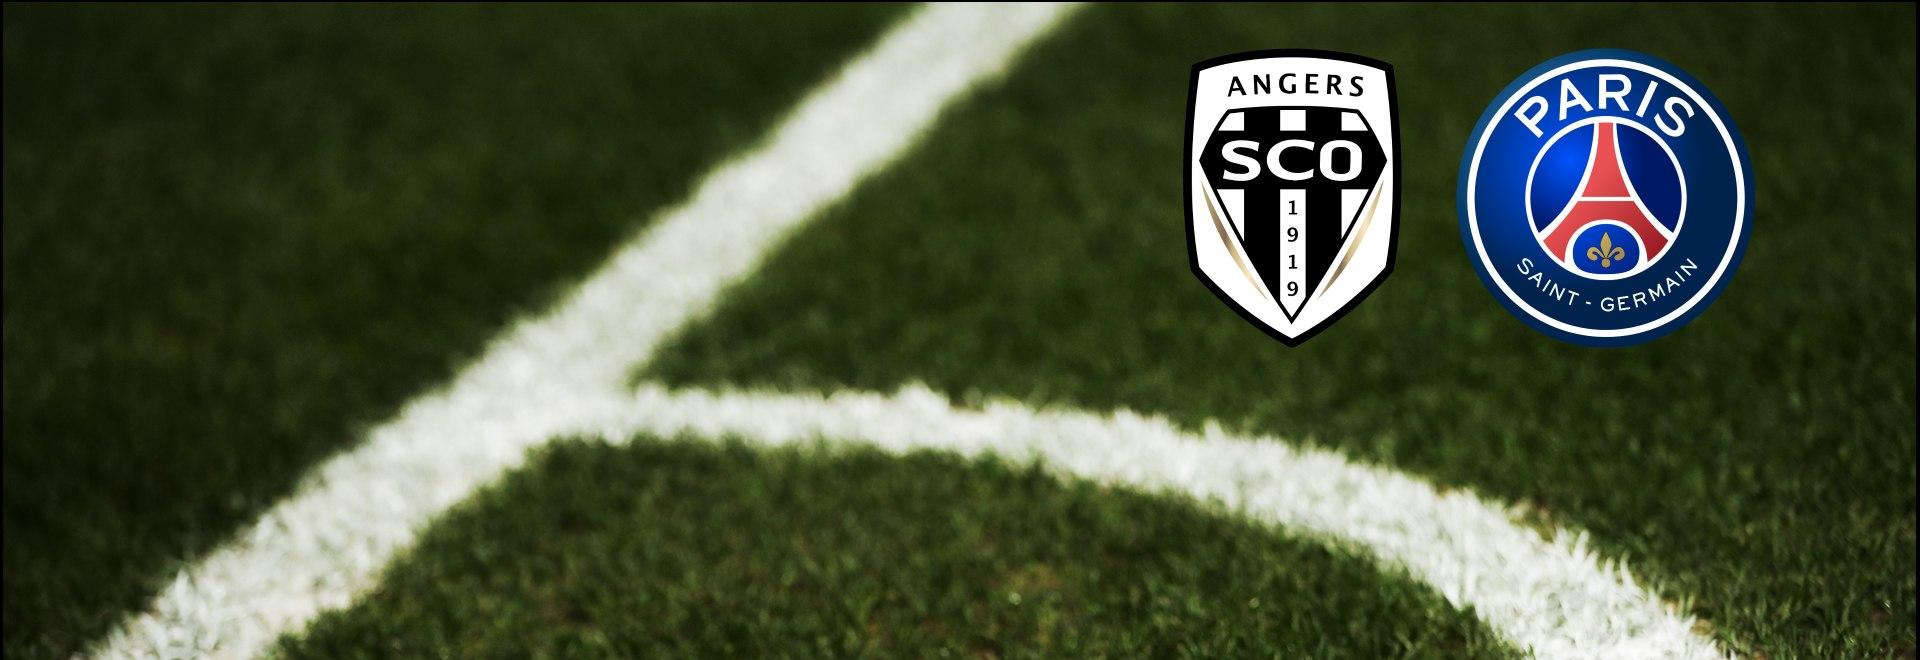 Angers - PSG. 20a g.